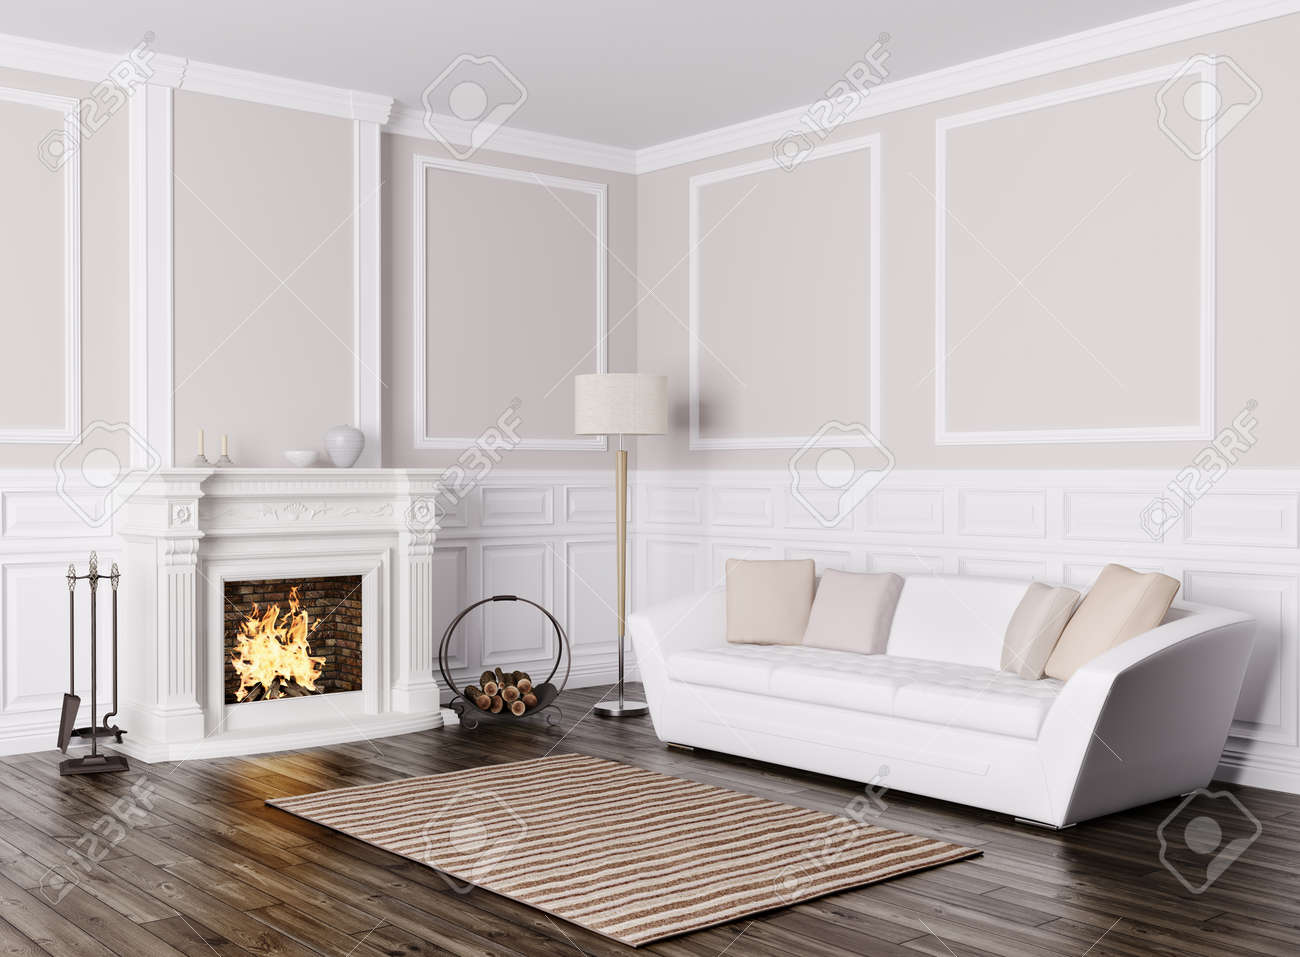 classic interior design of living room with white sofa and fireplace